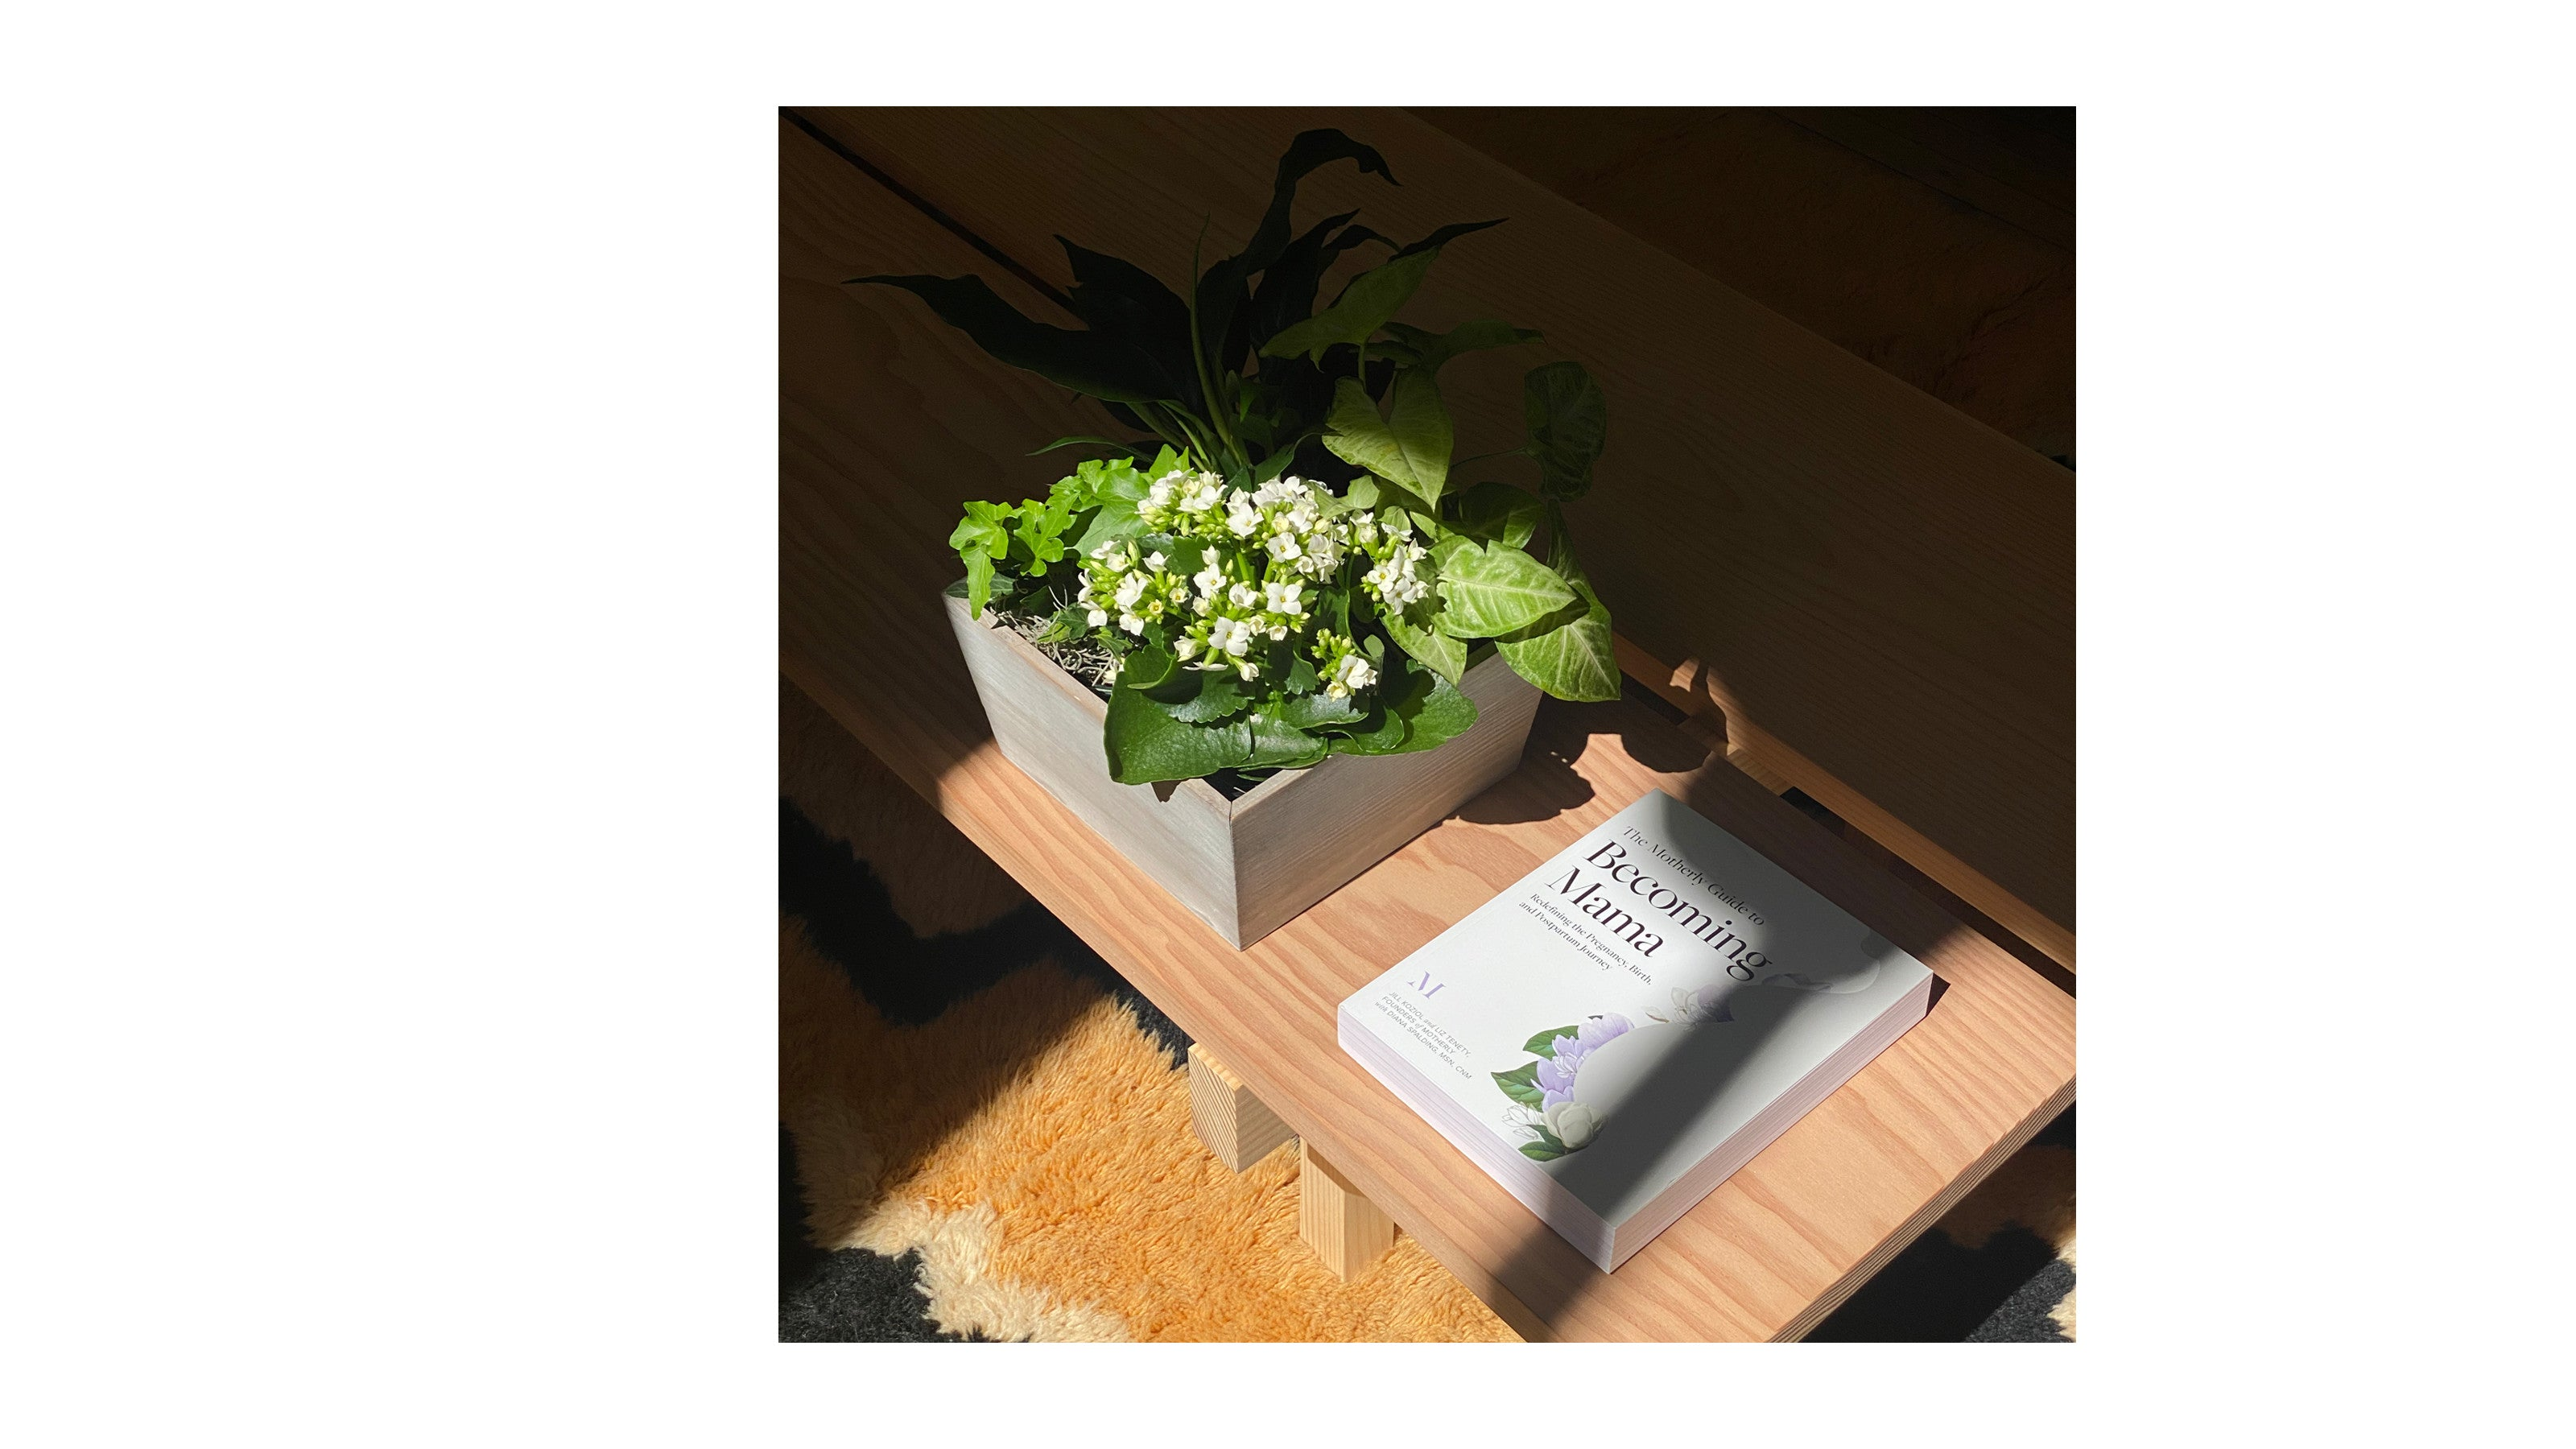 Becoming Mama Garden + Book by Motherly